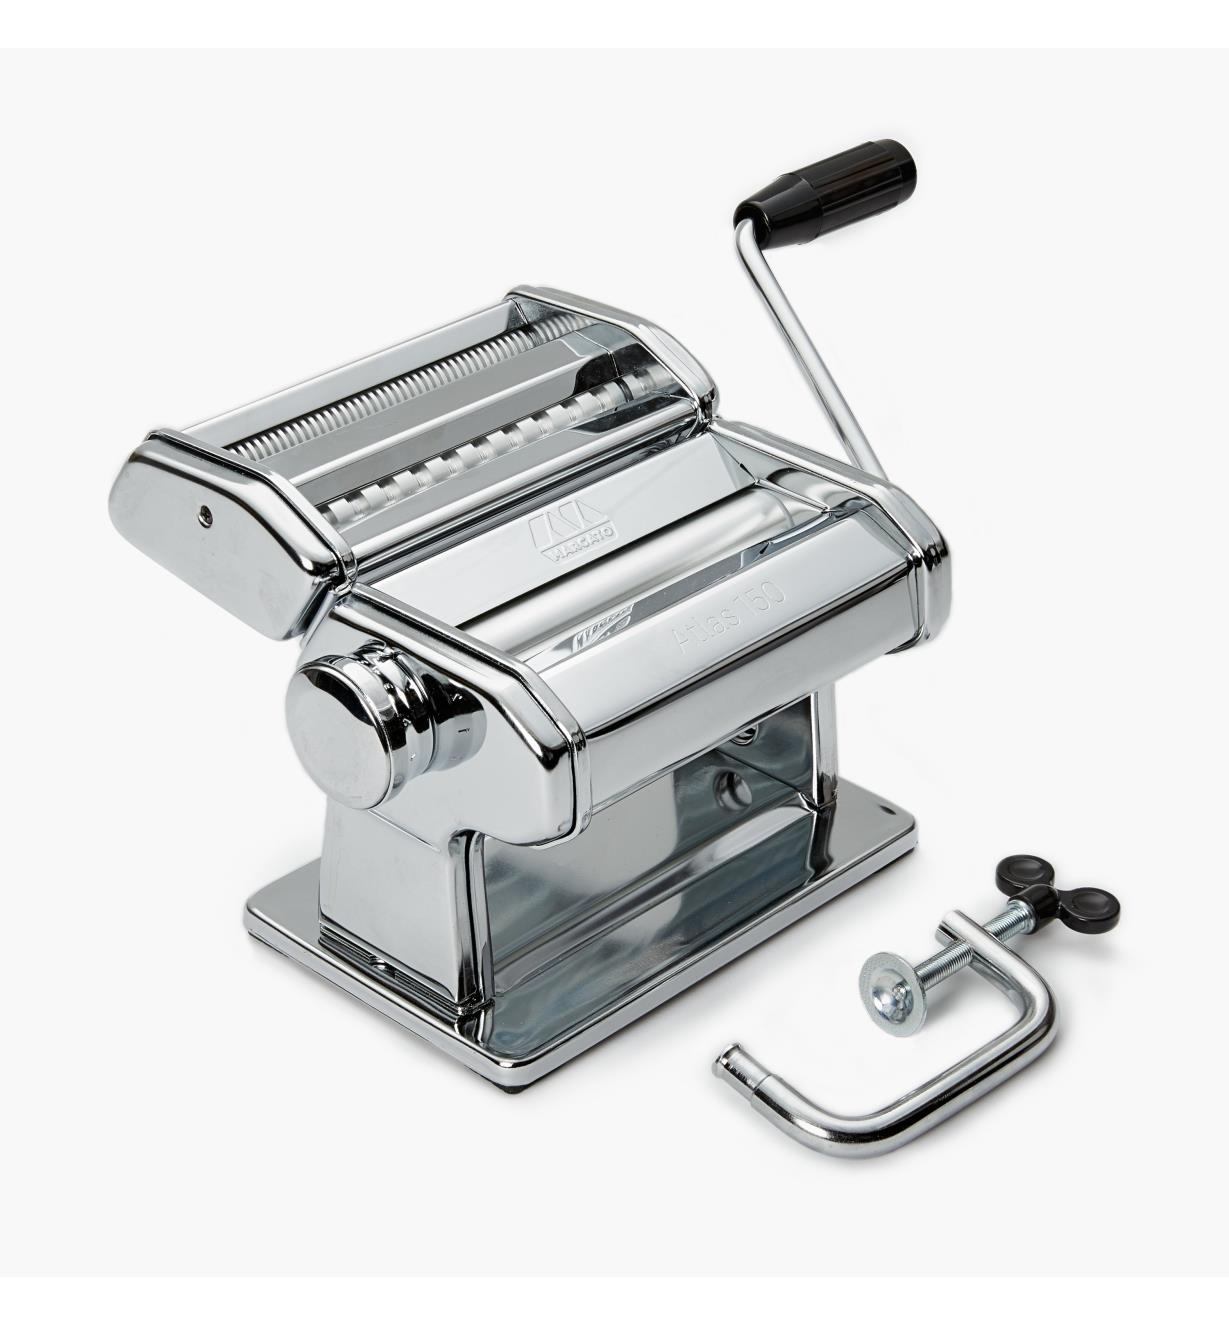 EV339 - Marcato Pasta Machine